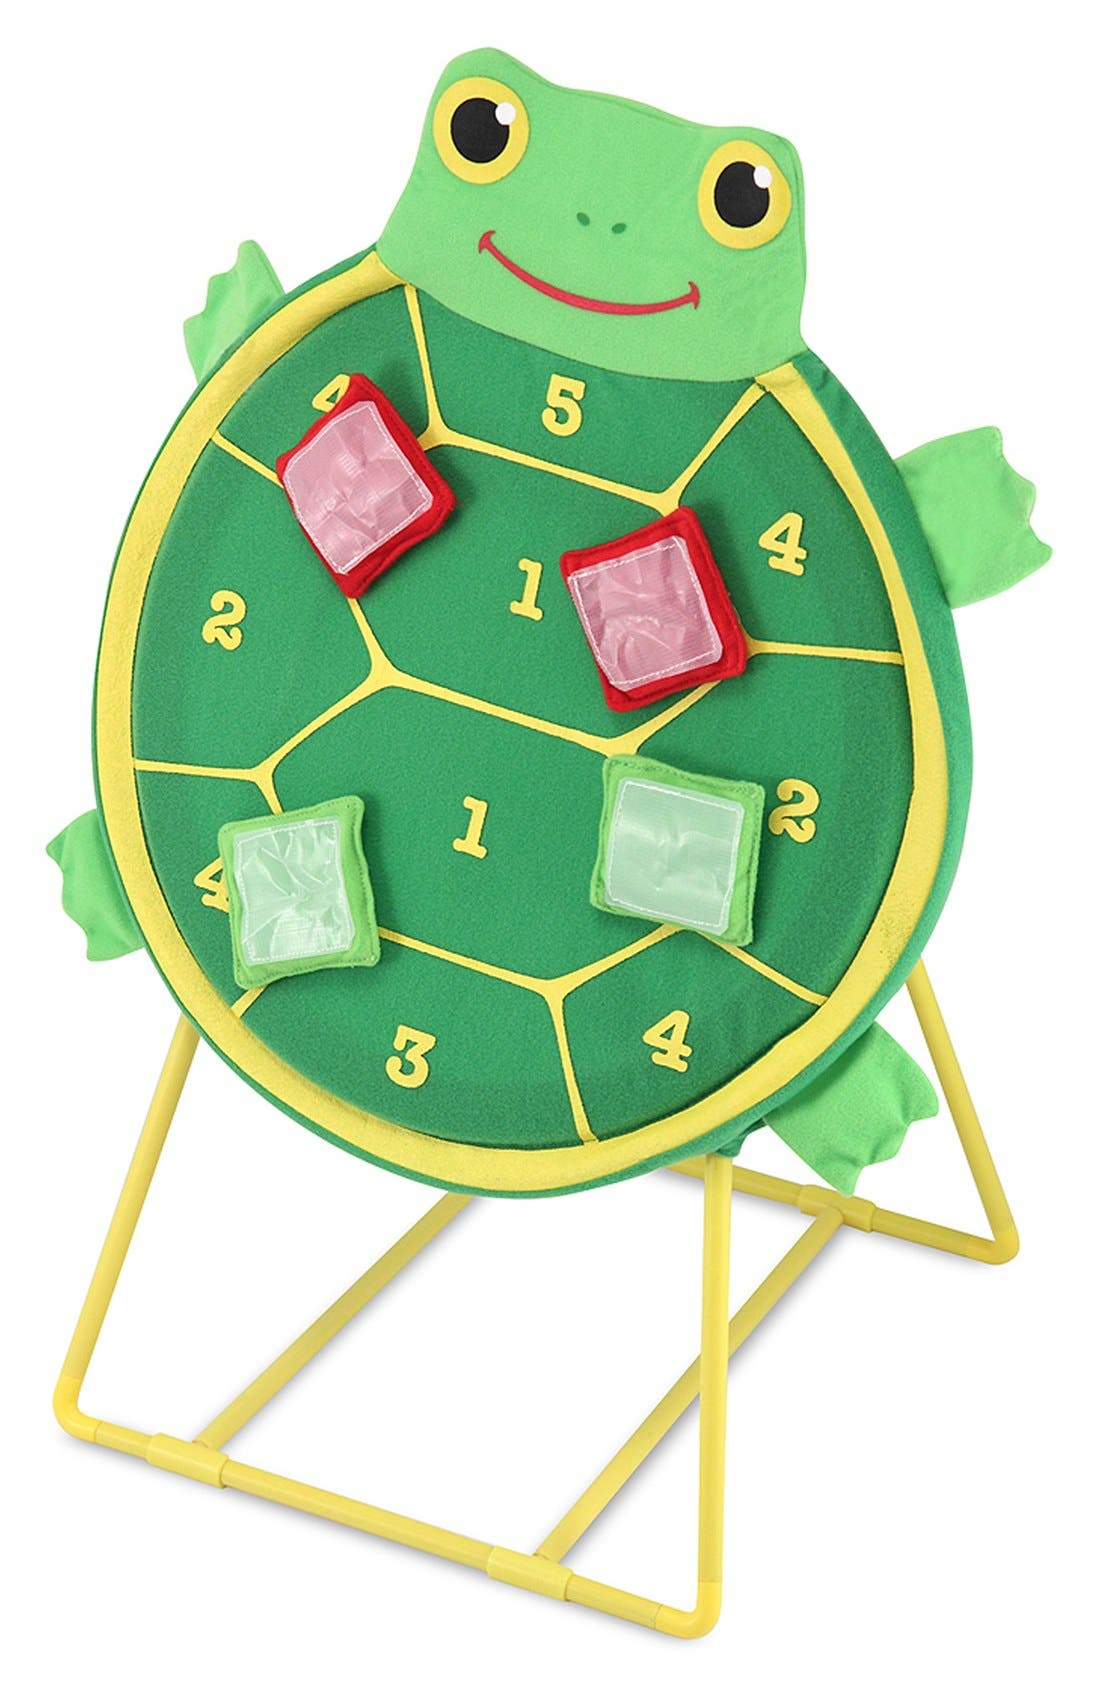 Alternate Image 1 Selected - Melissa & Doug 'Tootle Turtle' Target Game